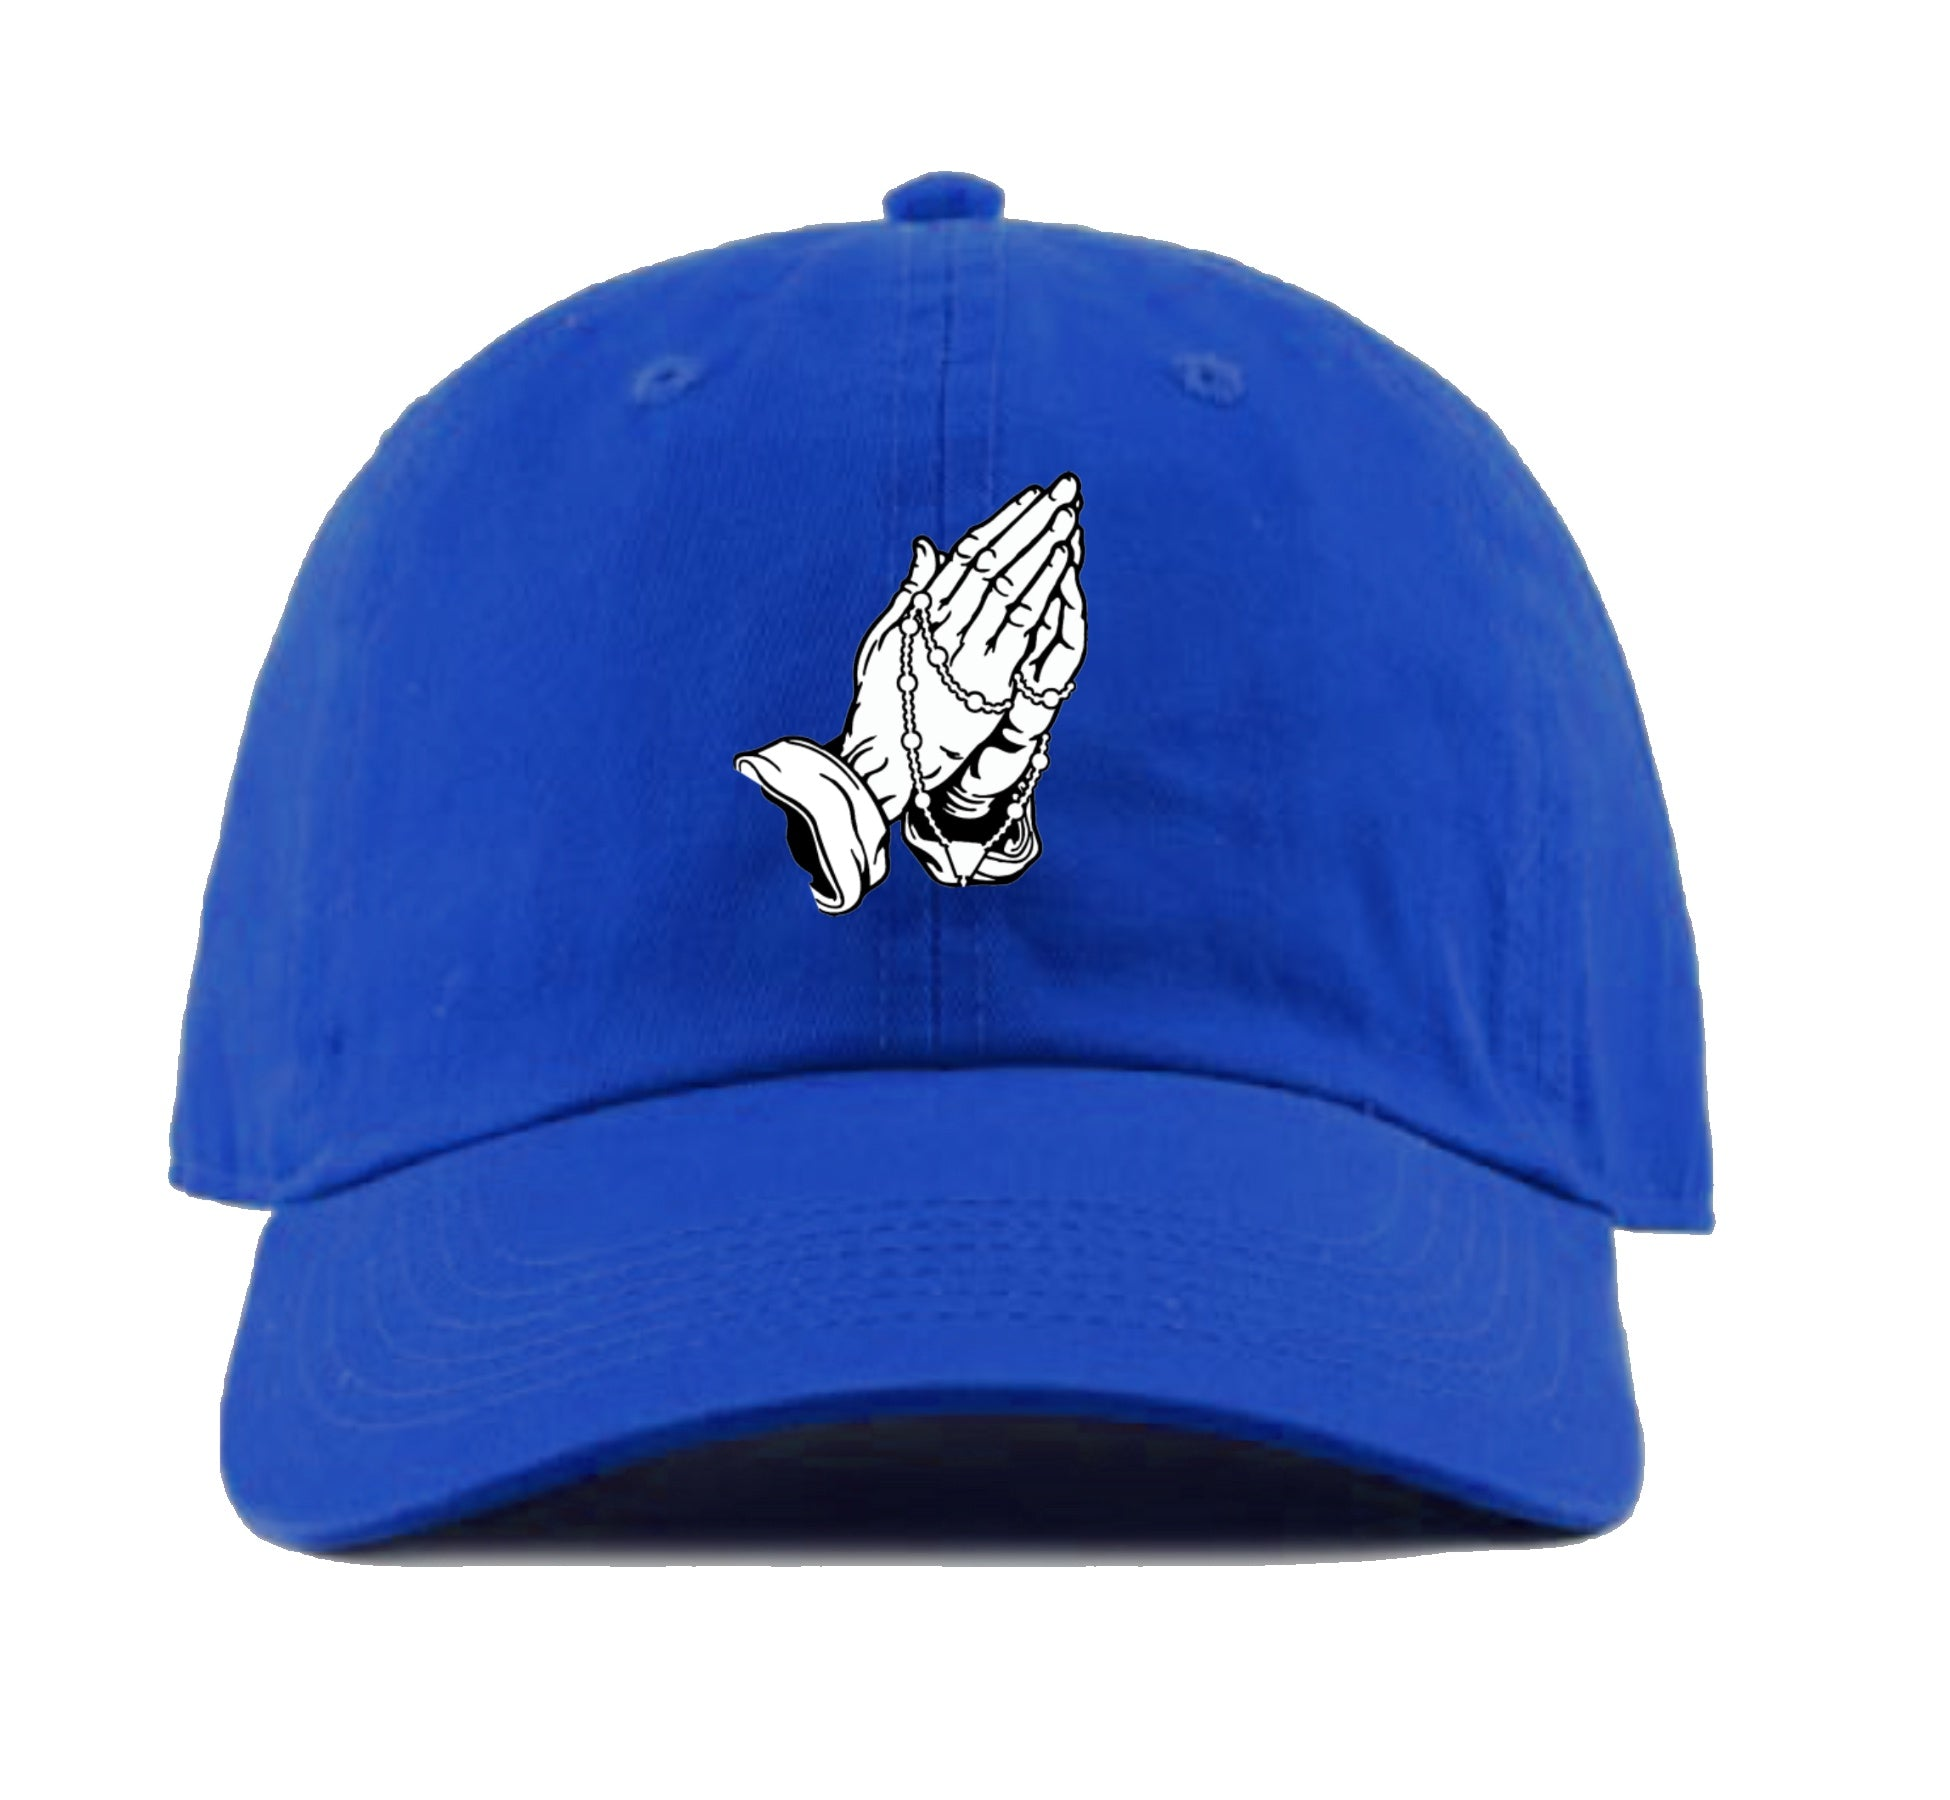 Praying Hands Dad Hat (Royal Blue)